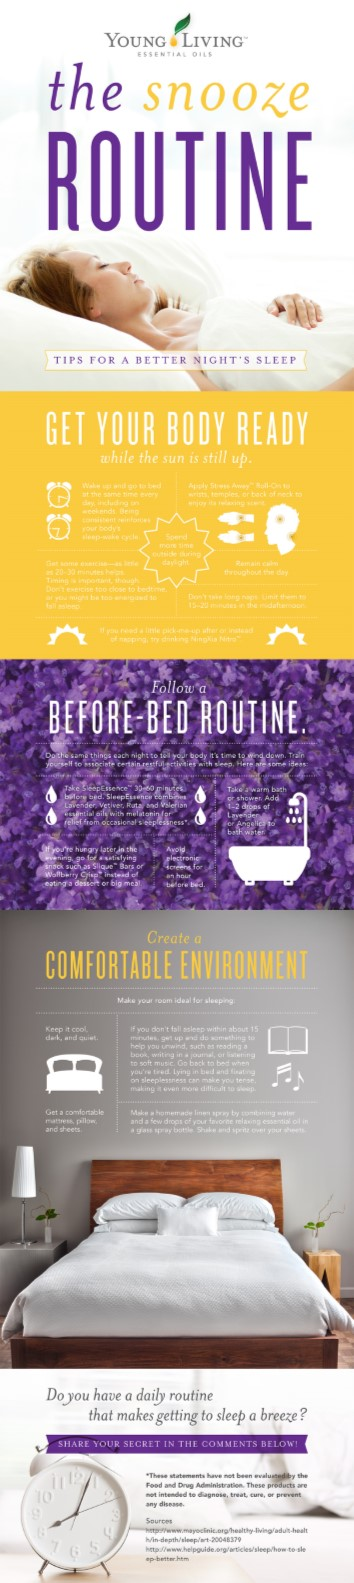 Snooze Routine - Young Living